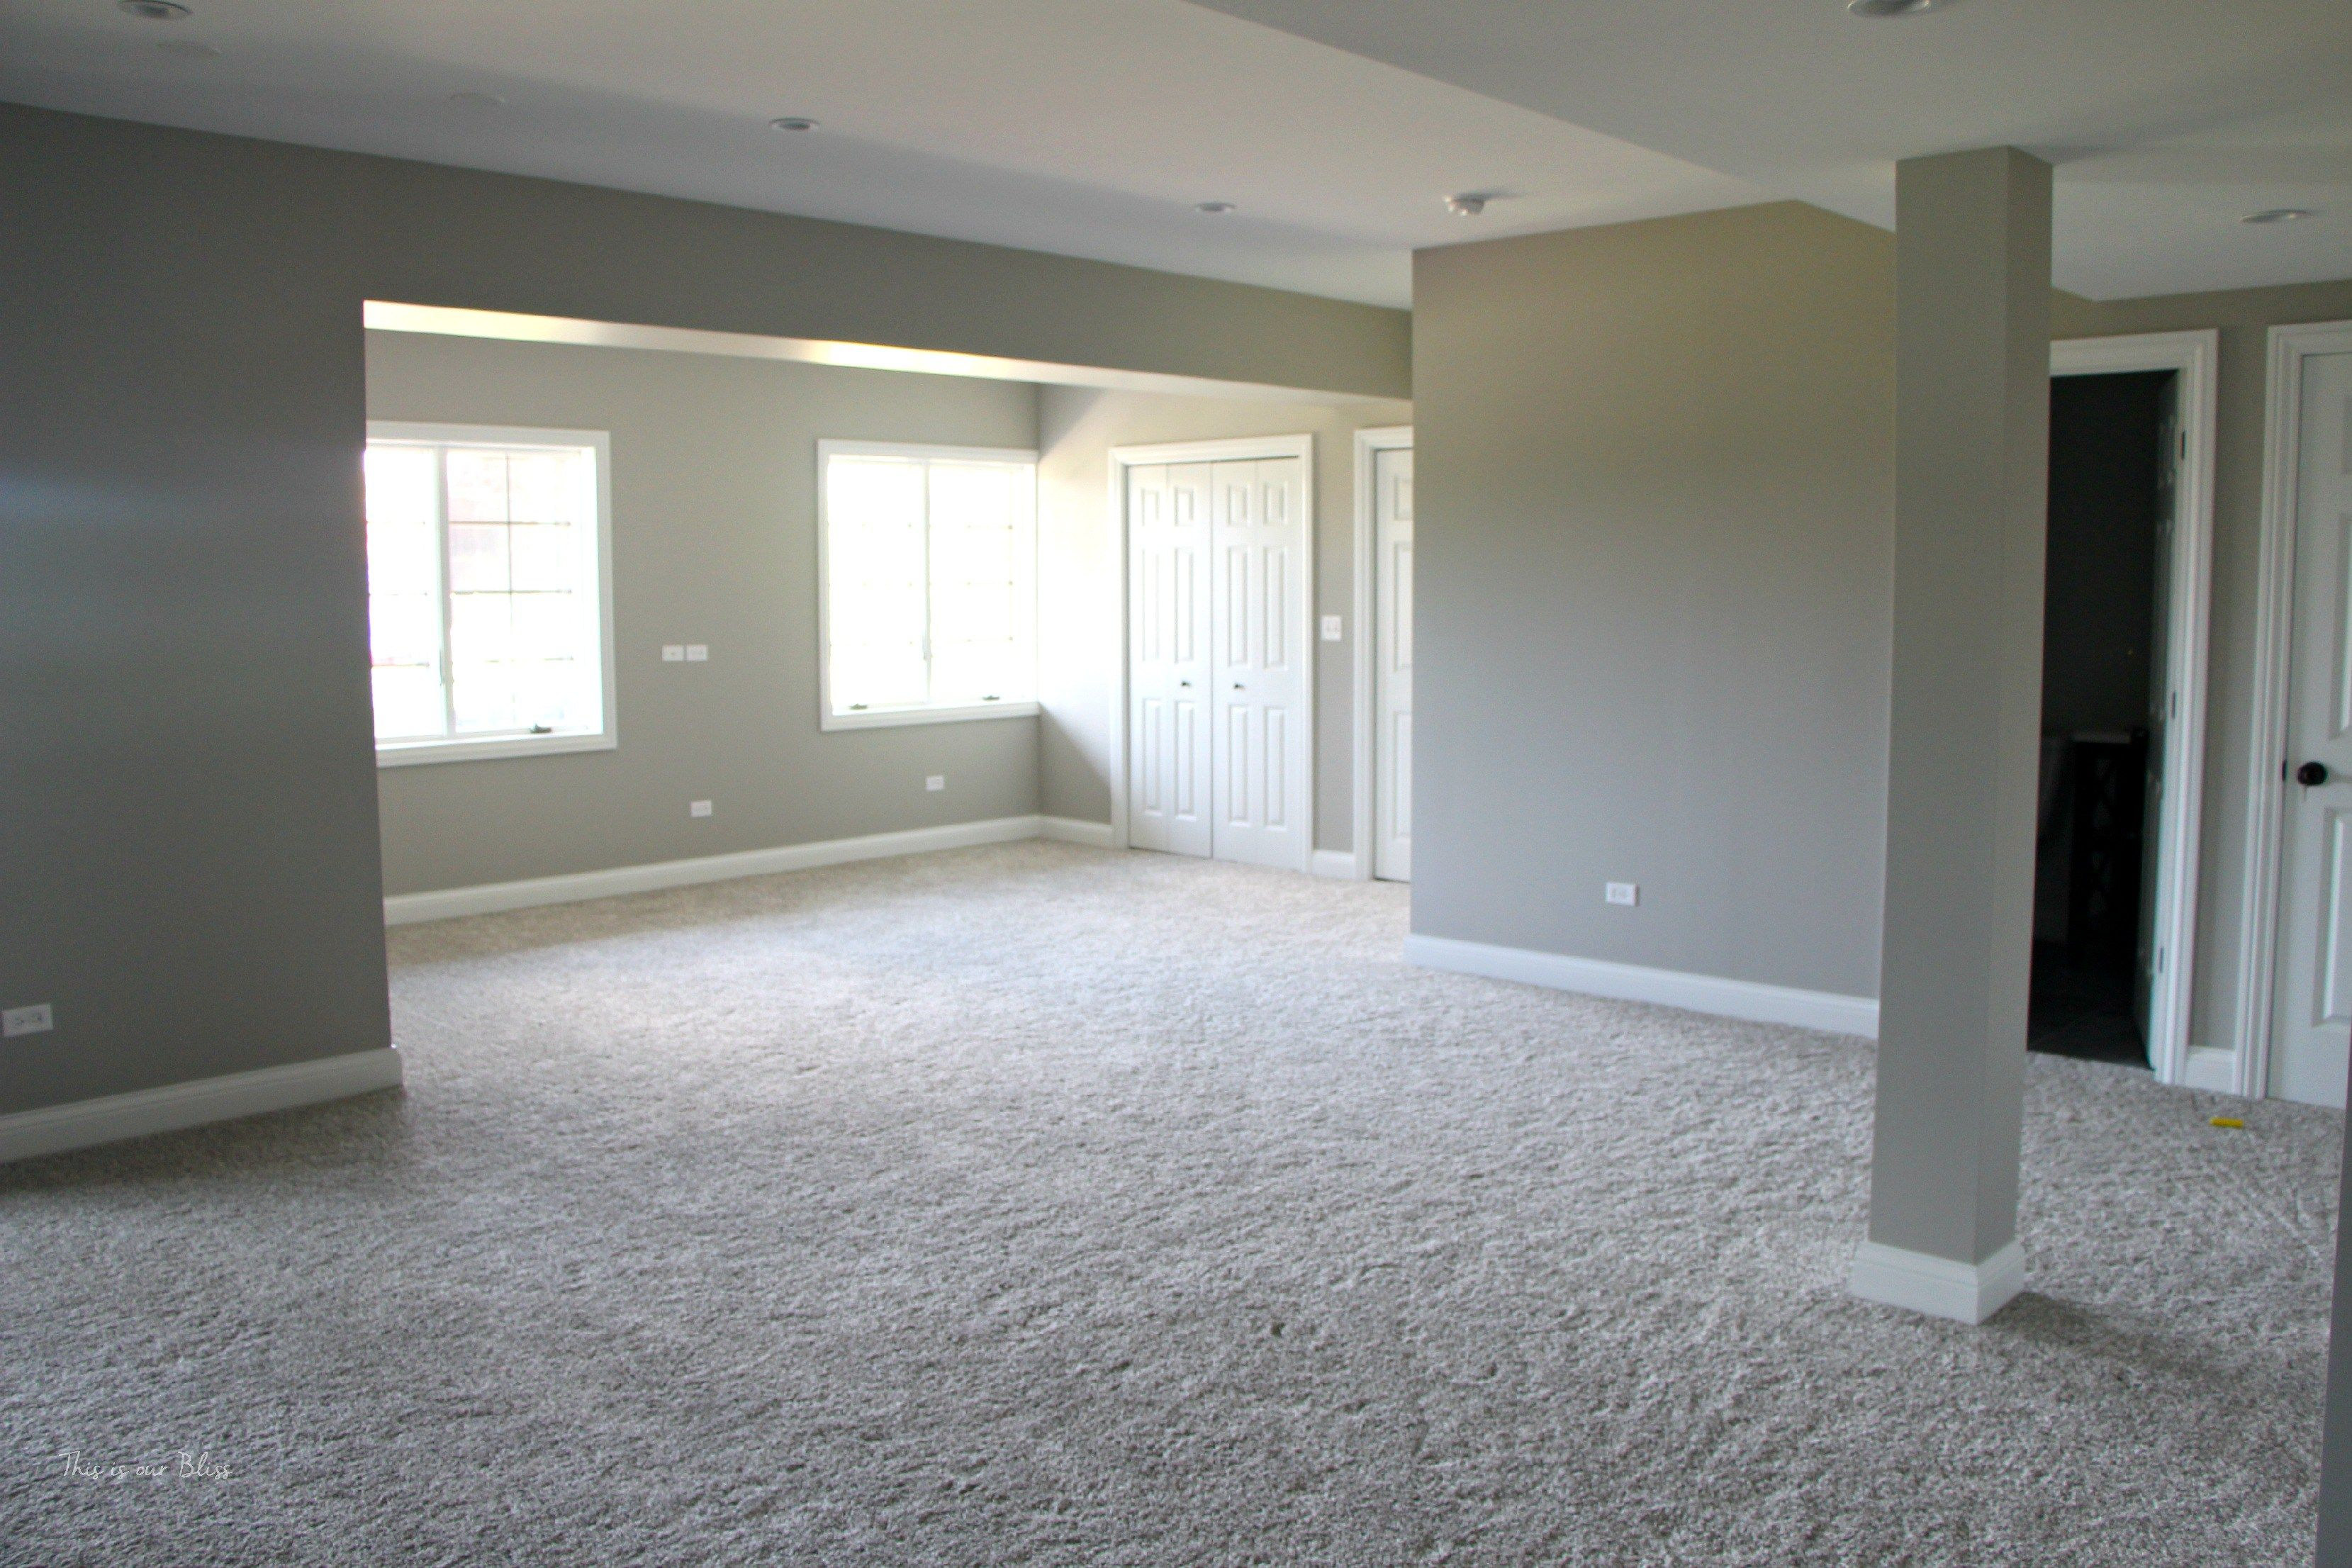 The Best Basement Paint Color And Carpet Choices This Is Our